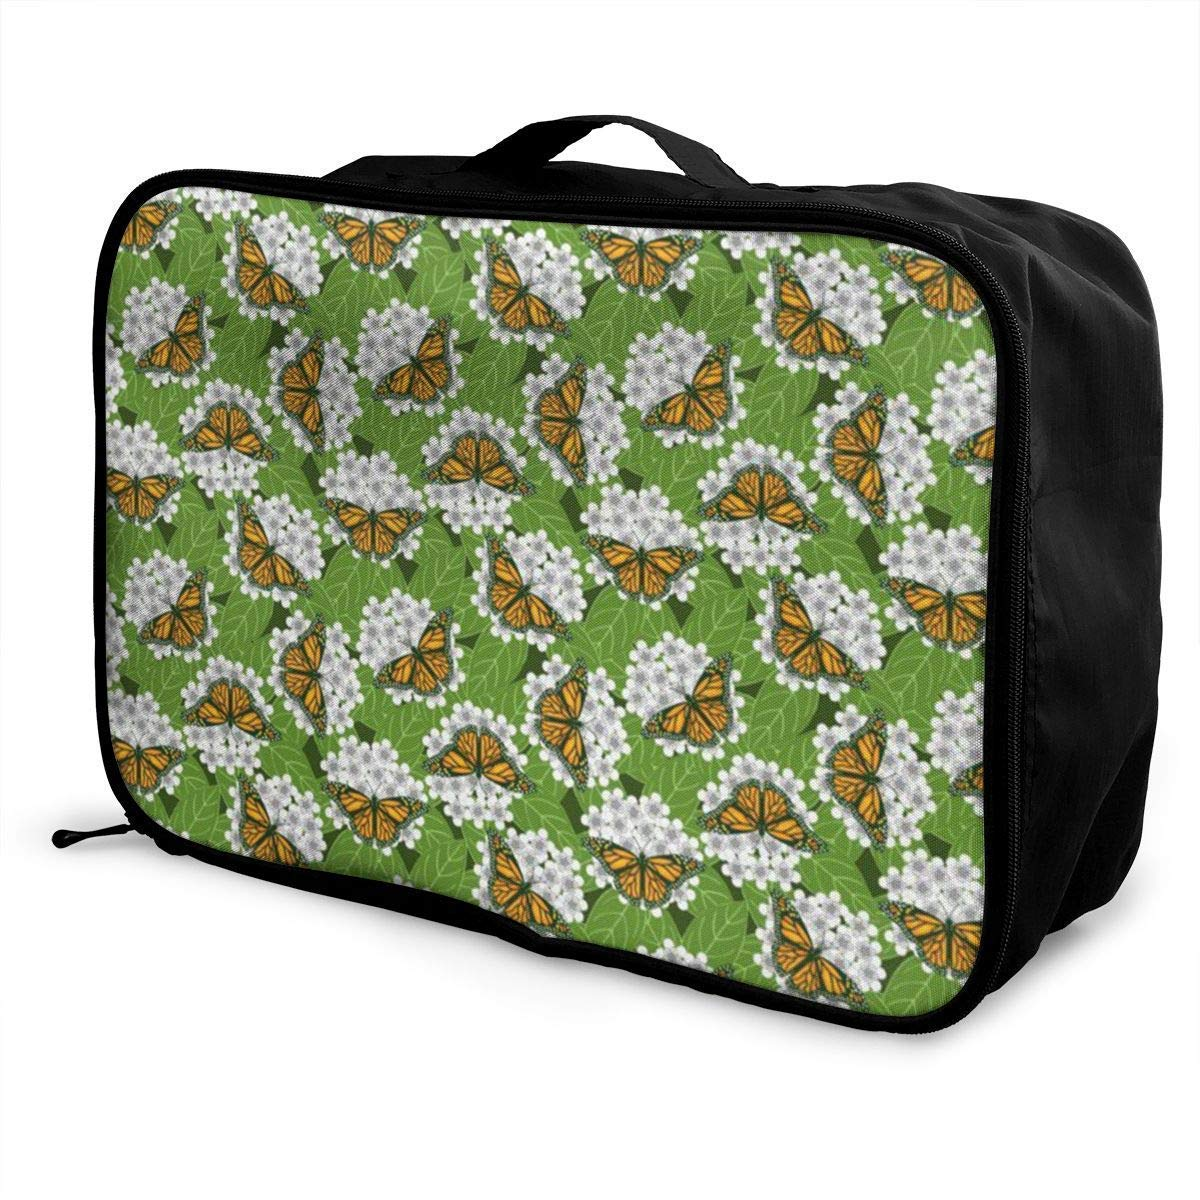 Portable Luggage Duffel Bag Monarch Butterflies Travel Bags Carry-on in Trolley Handle JTRVW Luggage Bags for Travel